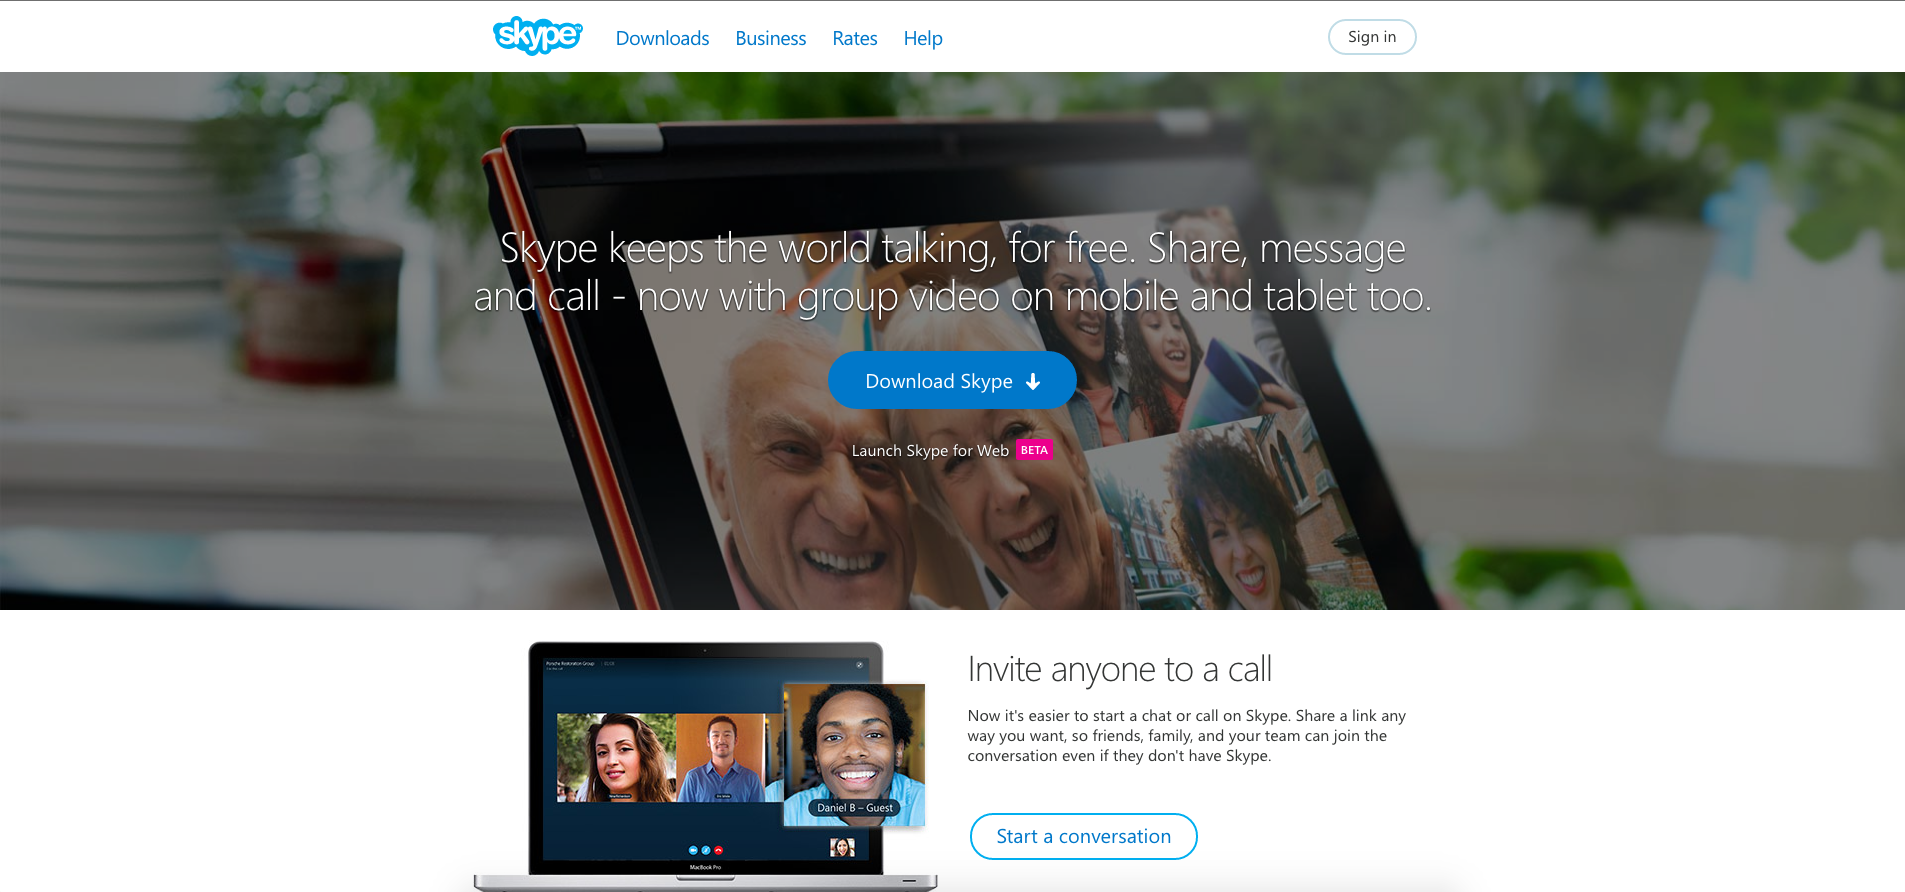 value-proposition-example-skype.png